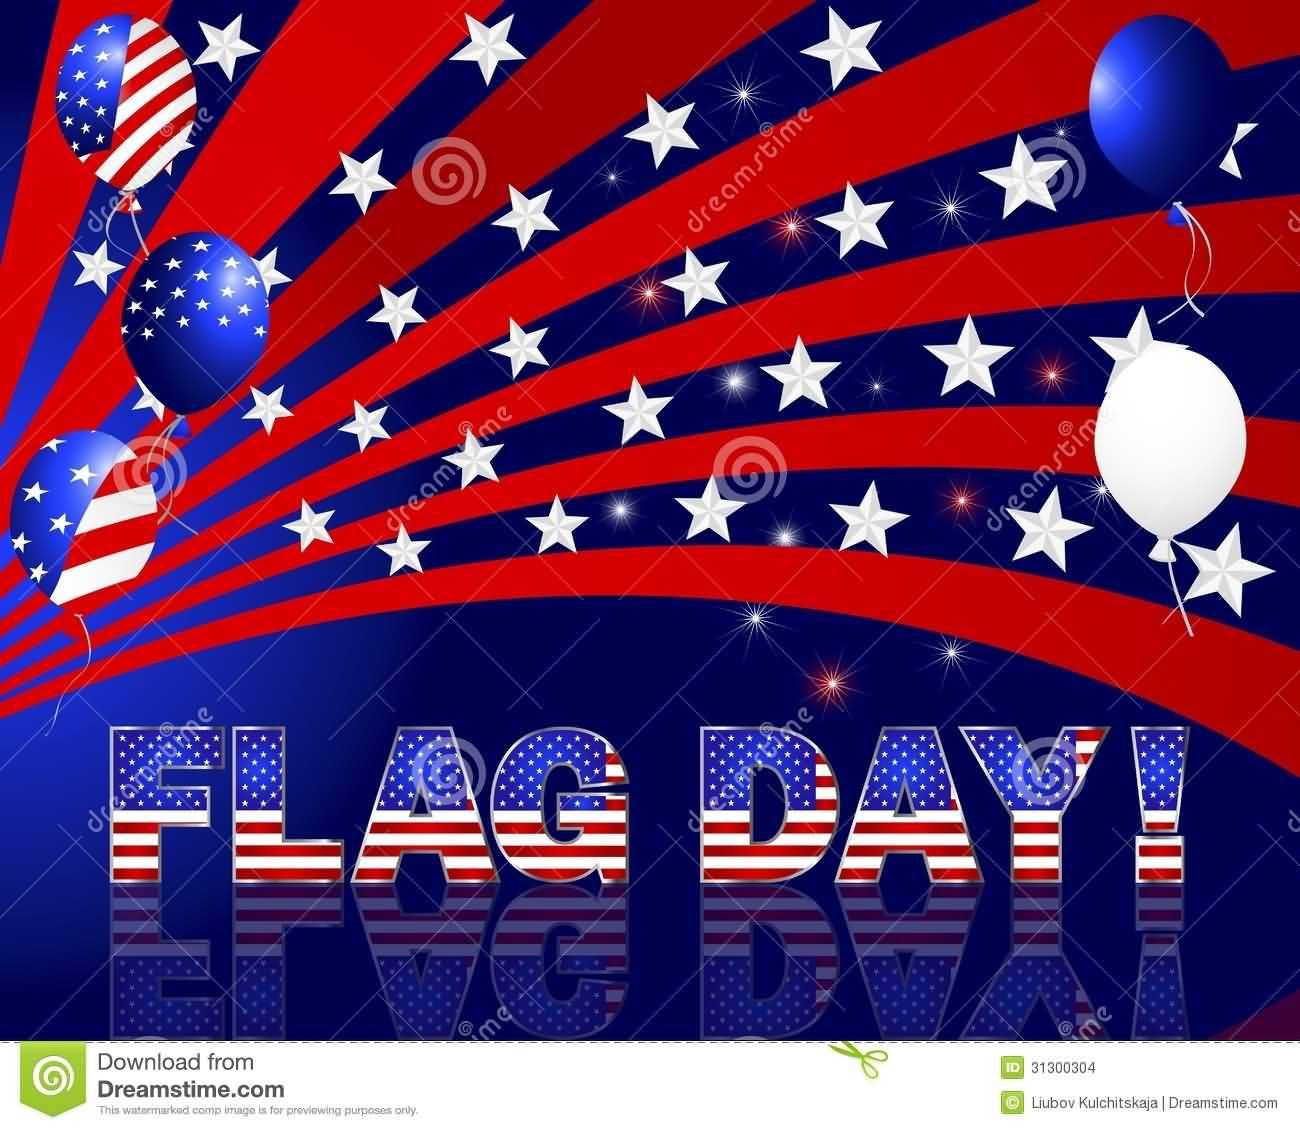 Have A Great Day Happy Flag Day Wishes Image